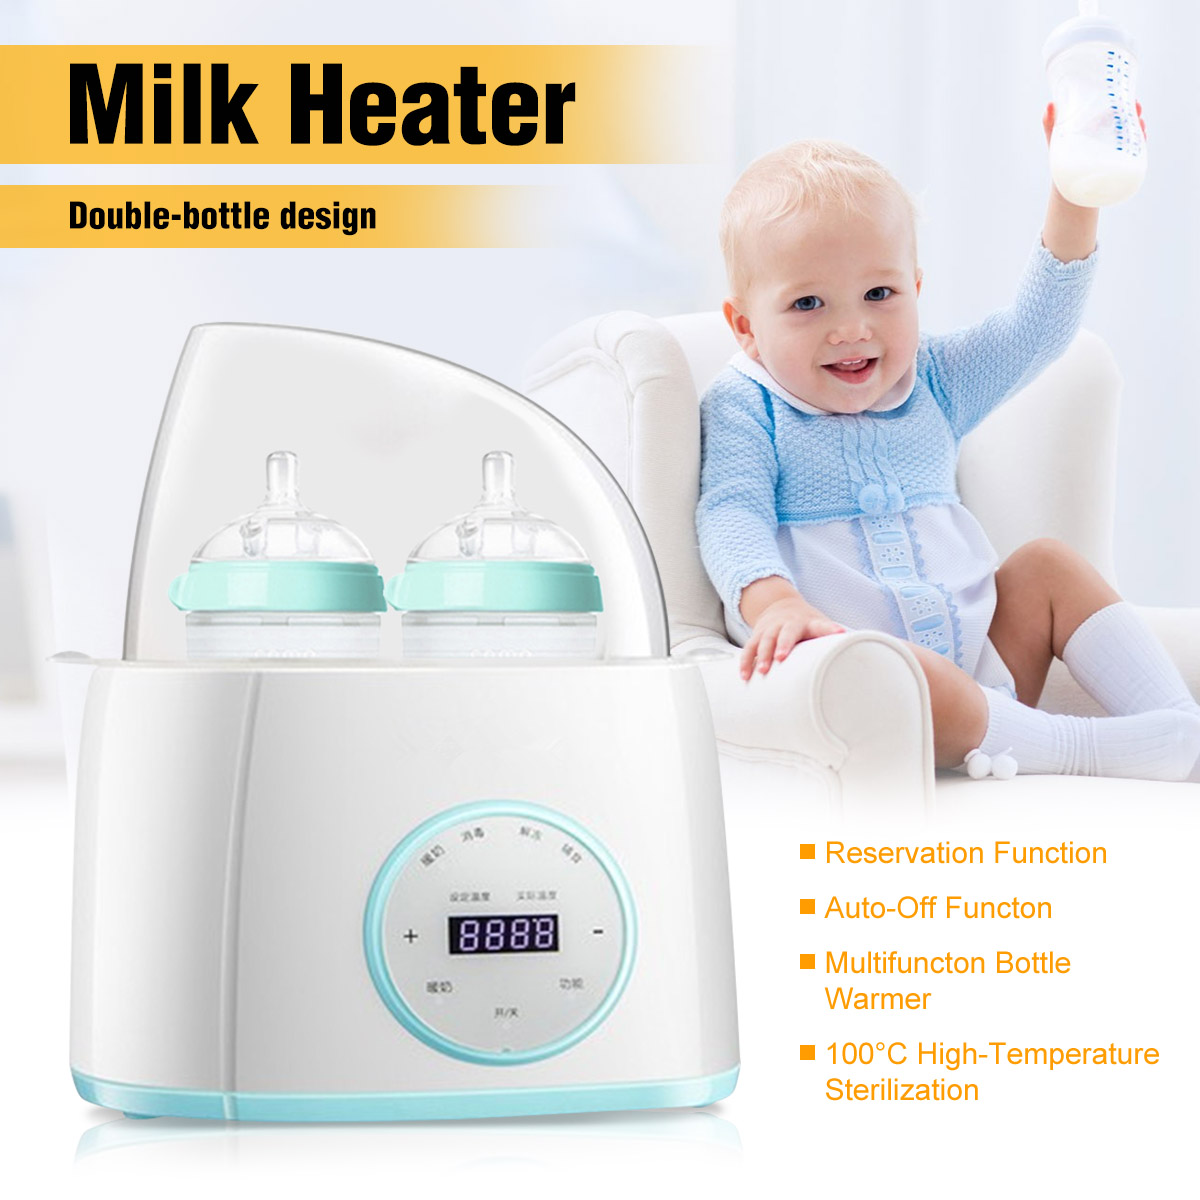 6 In1 Milk Warmer Heater Universal Double Bottle Sterilizer For Breast Milk Feeding Baby Food Intelligent Thermostatic System